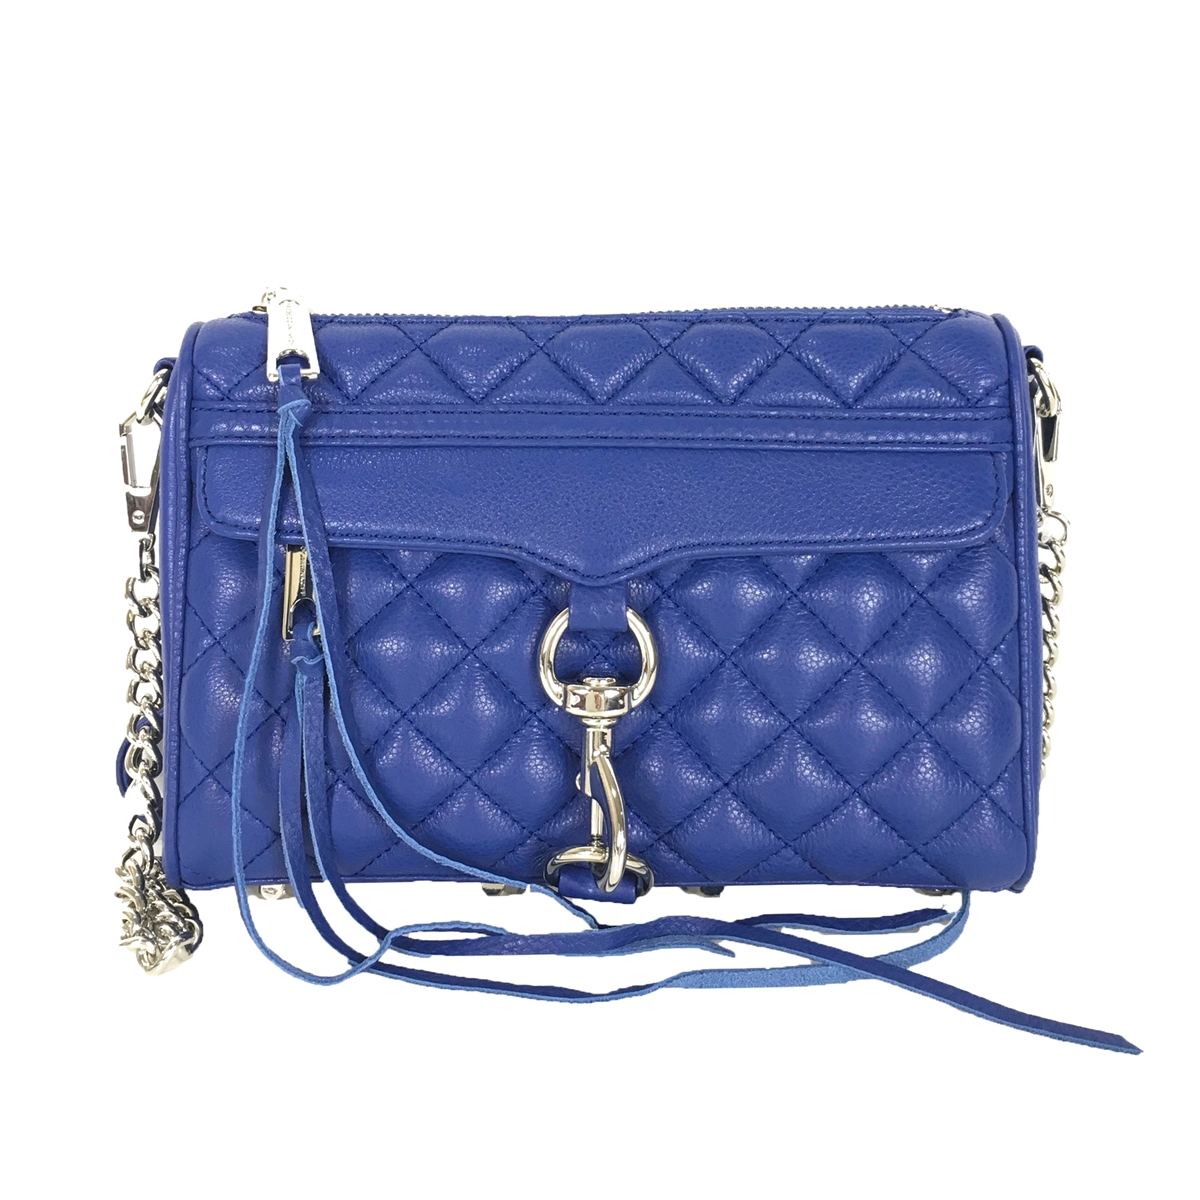 Rebecca Minkoff Mini Mac Quilted Leather Clutch Crossbody